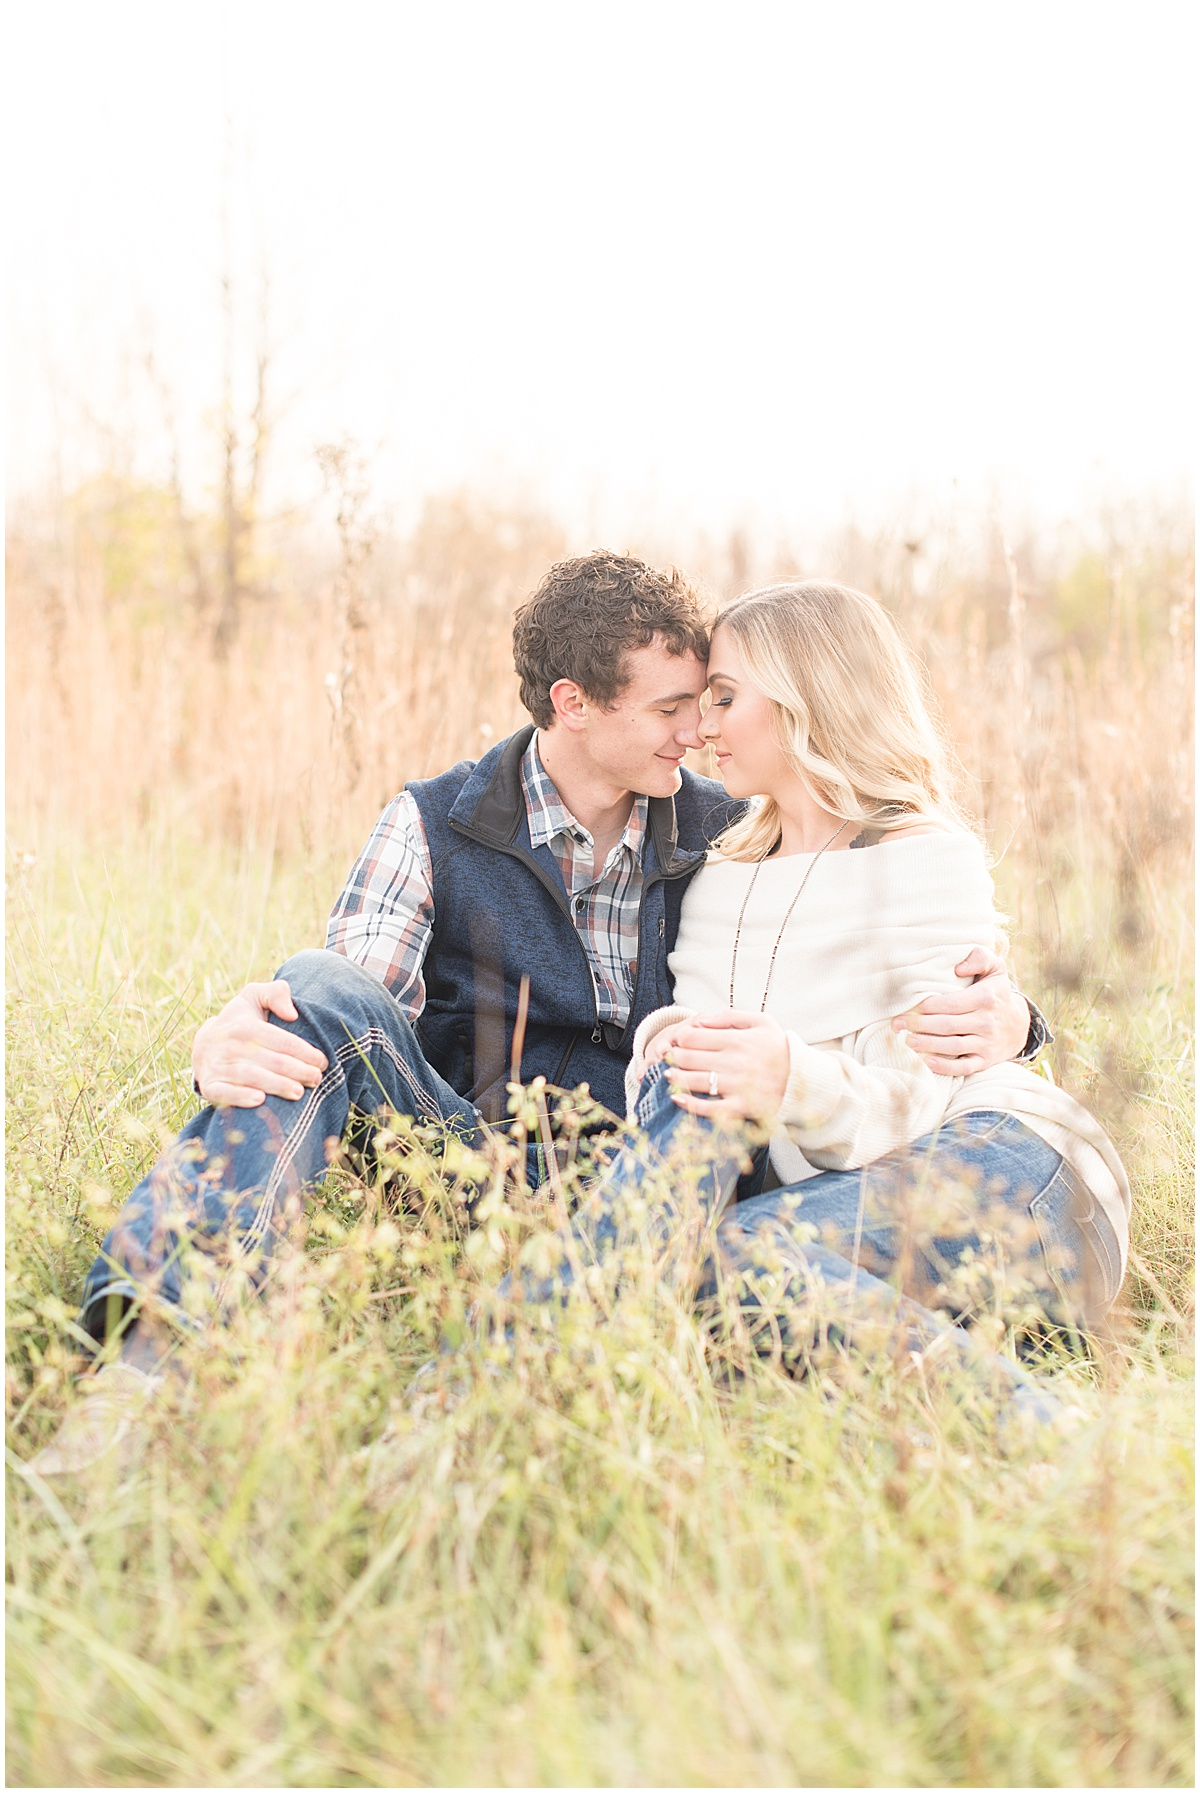 Wyatt Willson and Kaelyn Shircliff engagement session at Fairfield Lakes Park in Lafayette Indiana 18.jpg